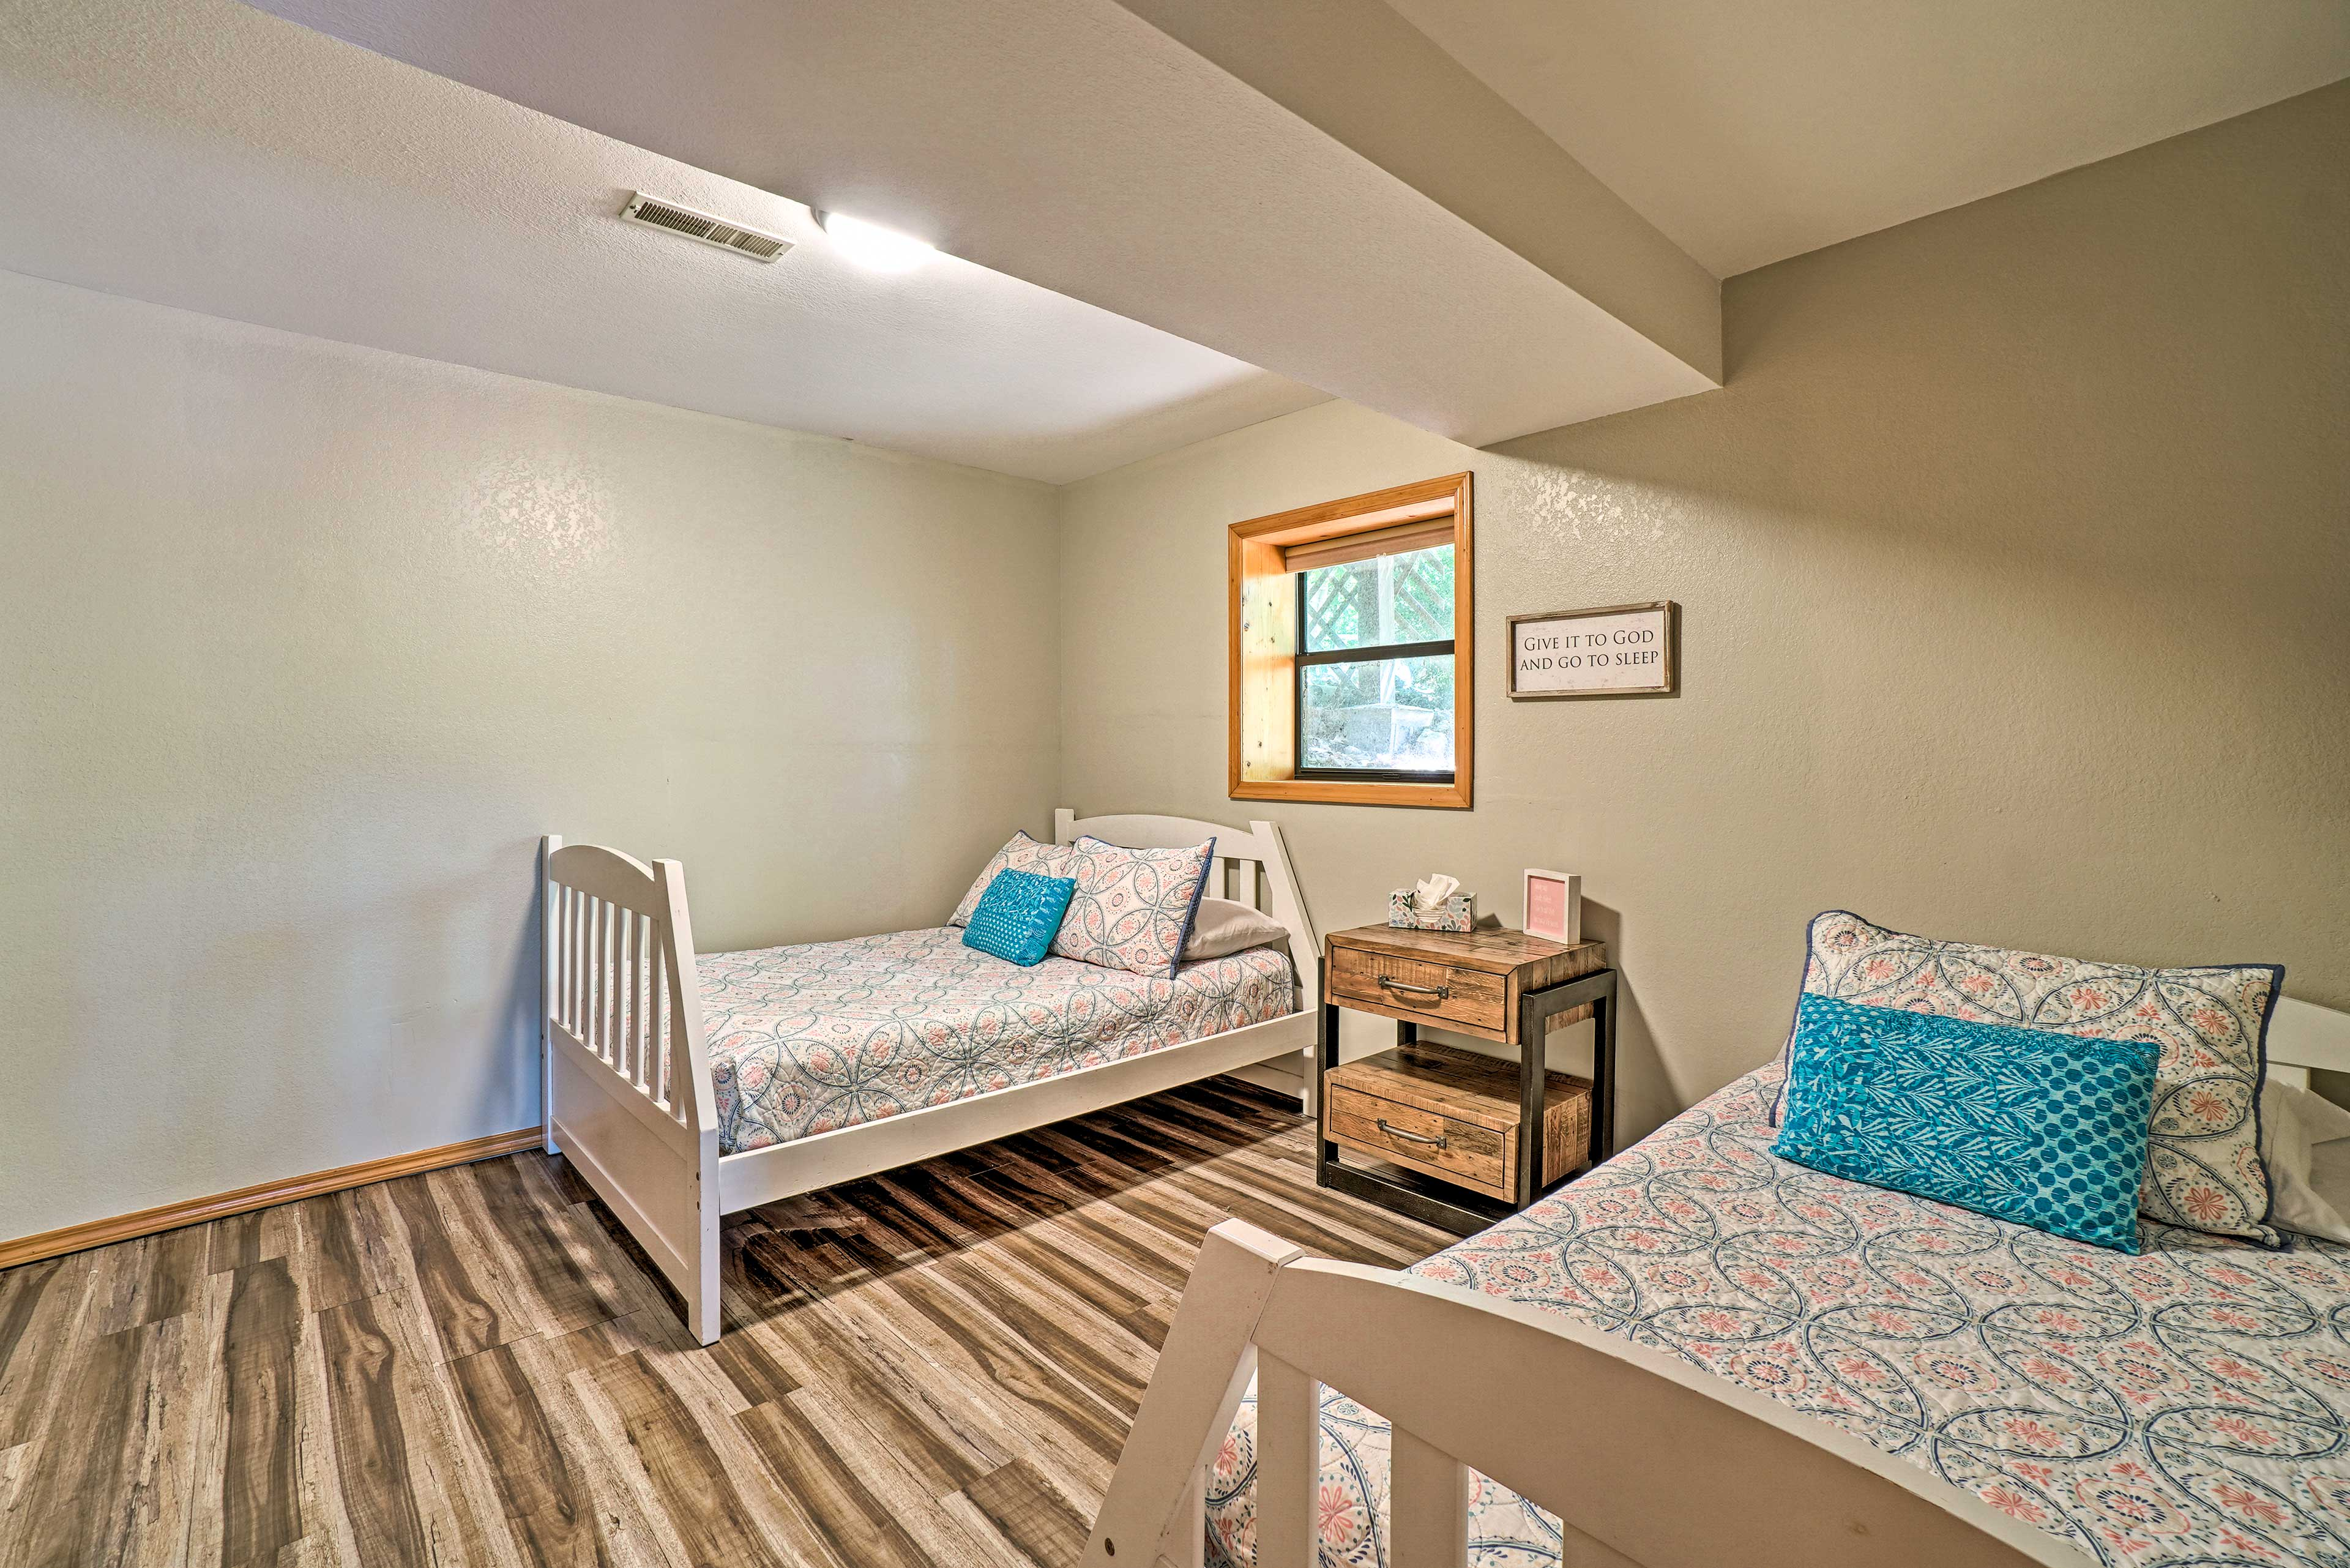 Bedroom 4 | Full Bed, Twin Bed